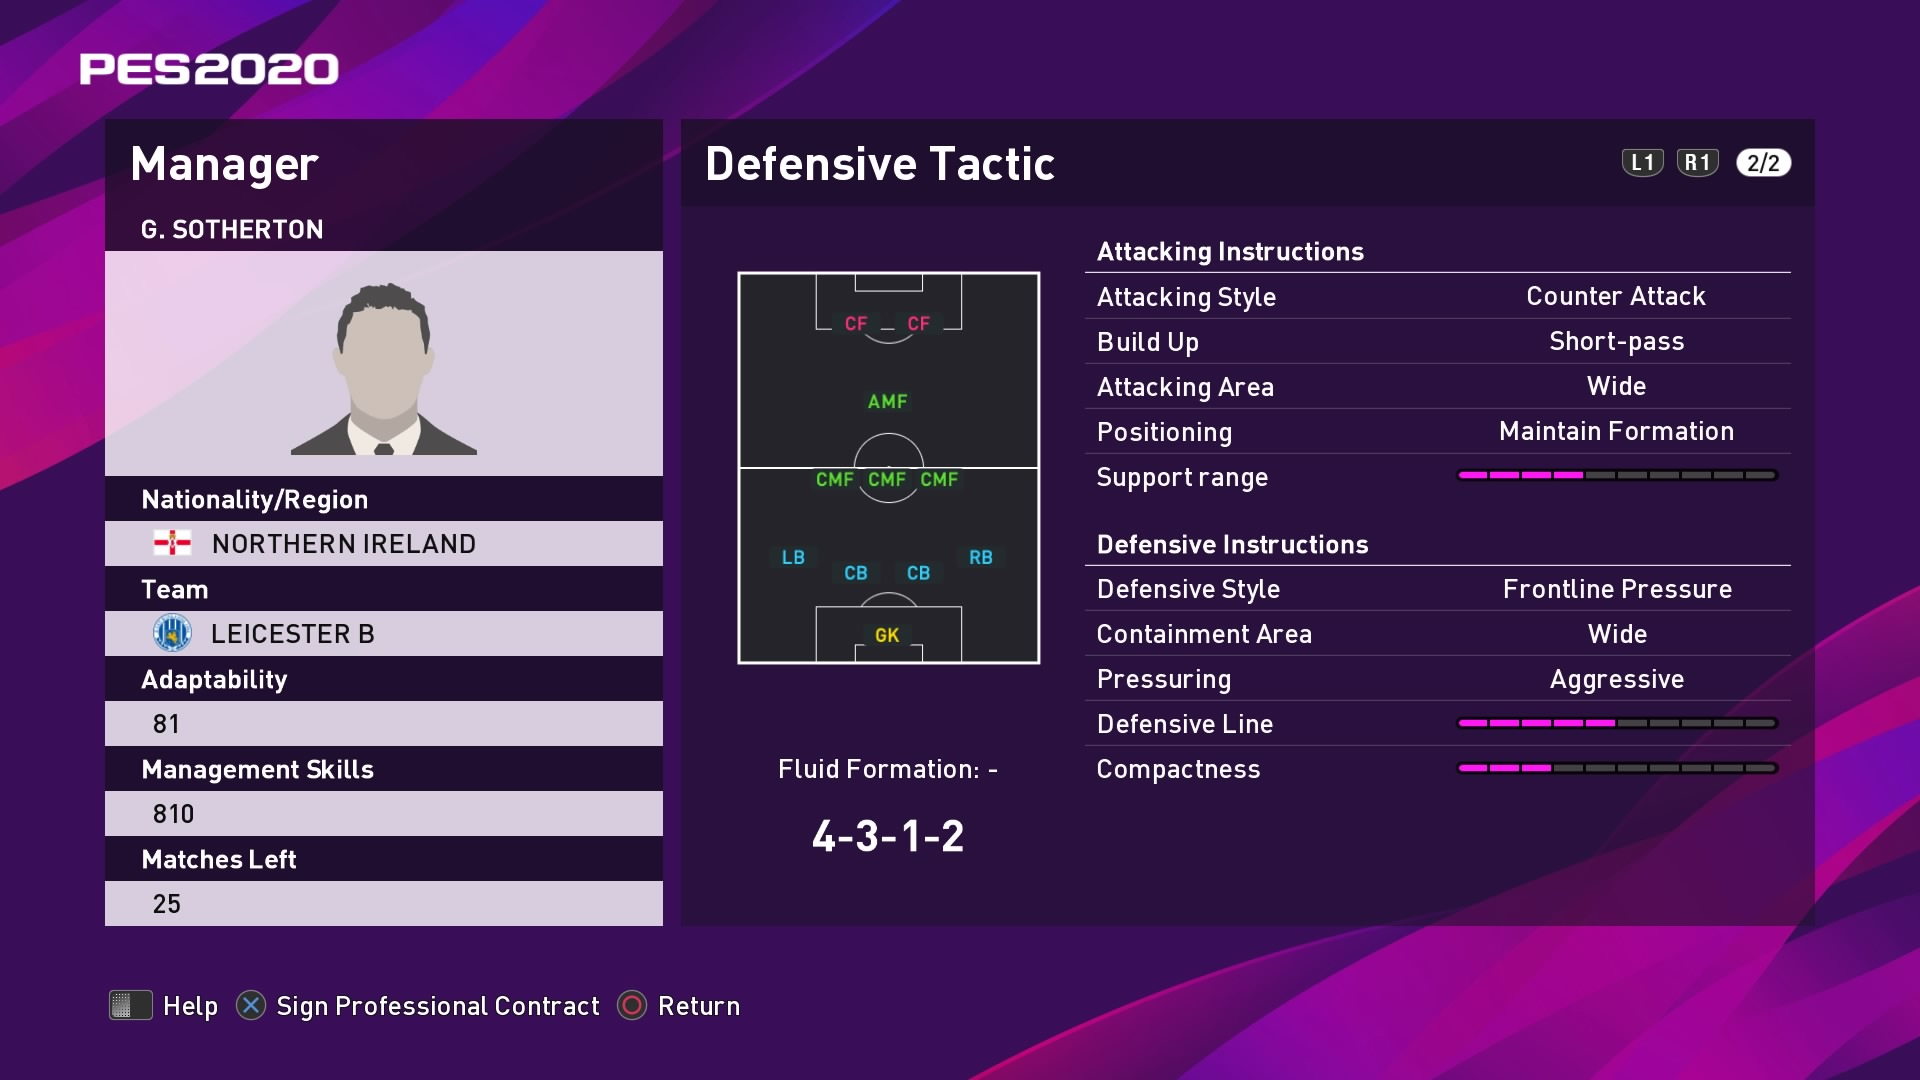 G. Sotherton (Brendan Rodgers) Defensive Tactic in PES 2020 myClub